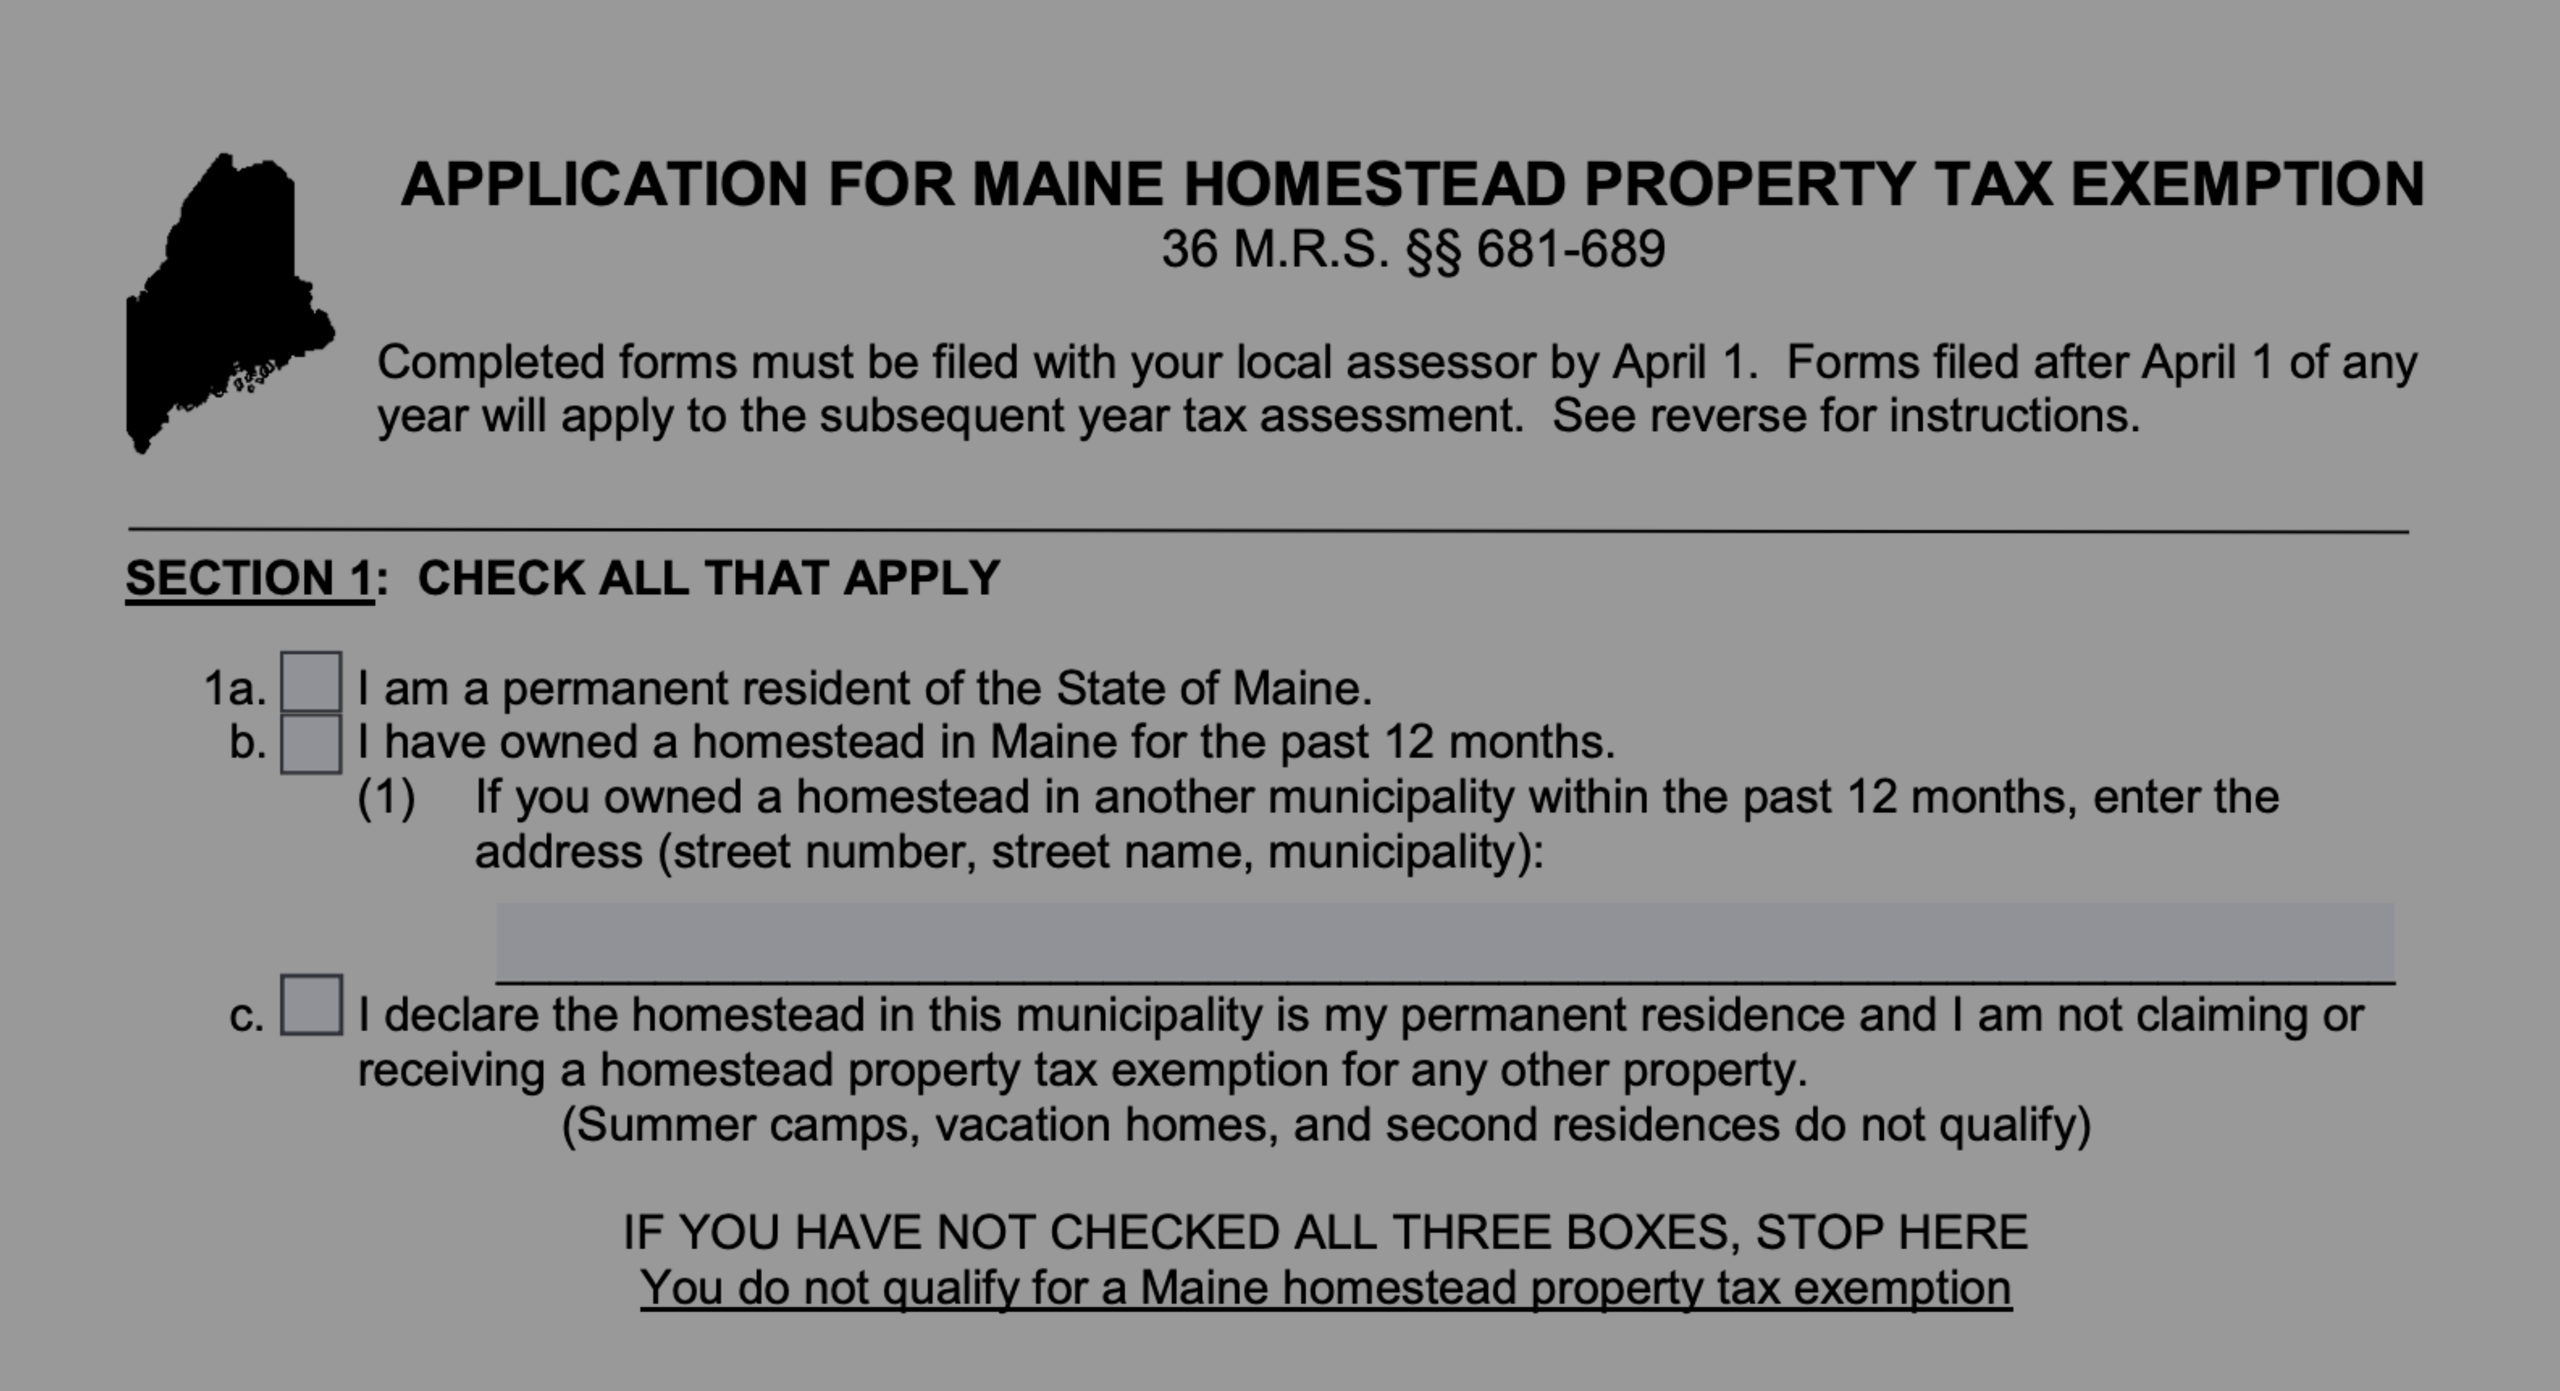 Maine Homestead Property Tax Exemption